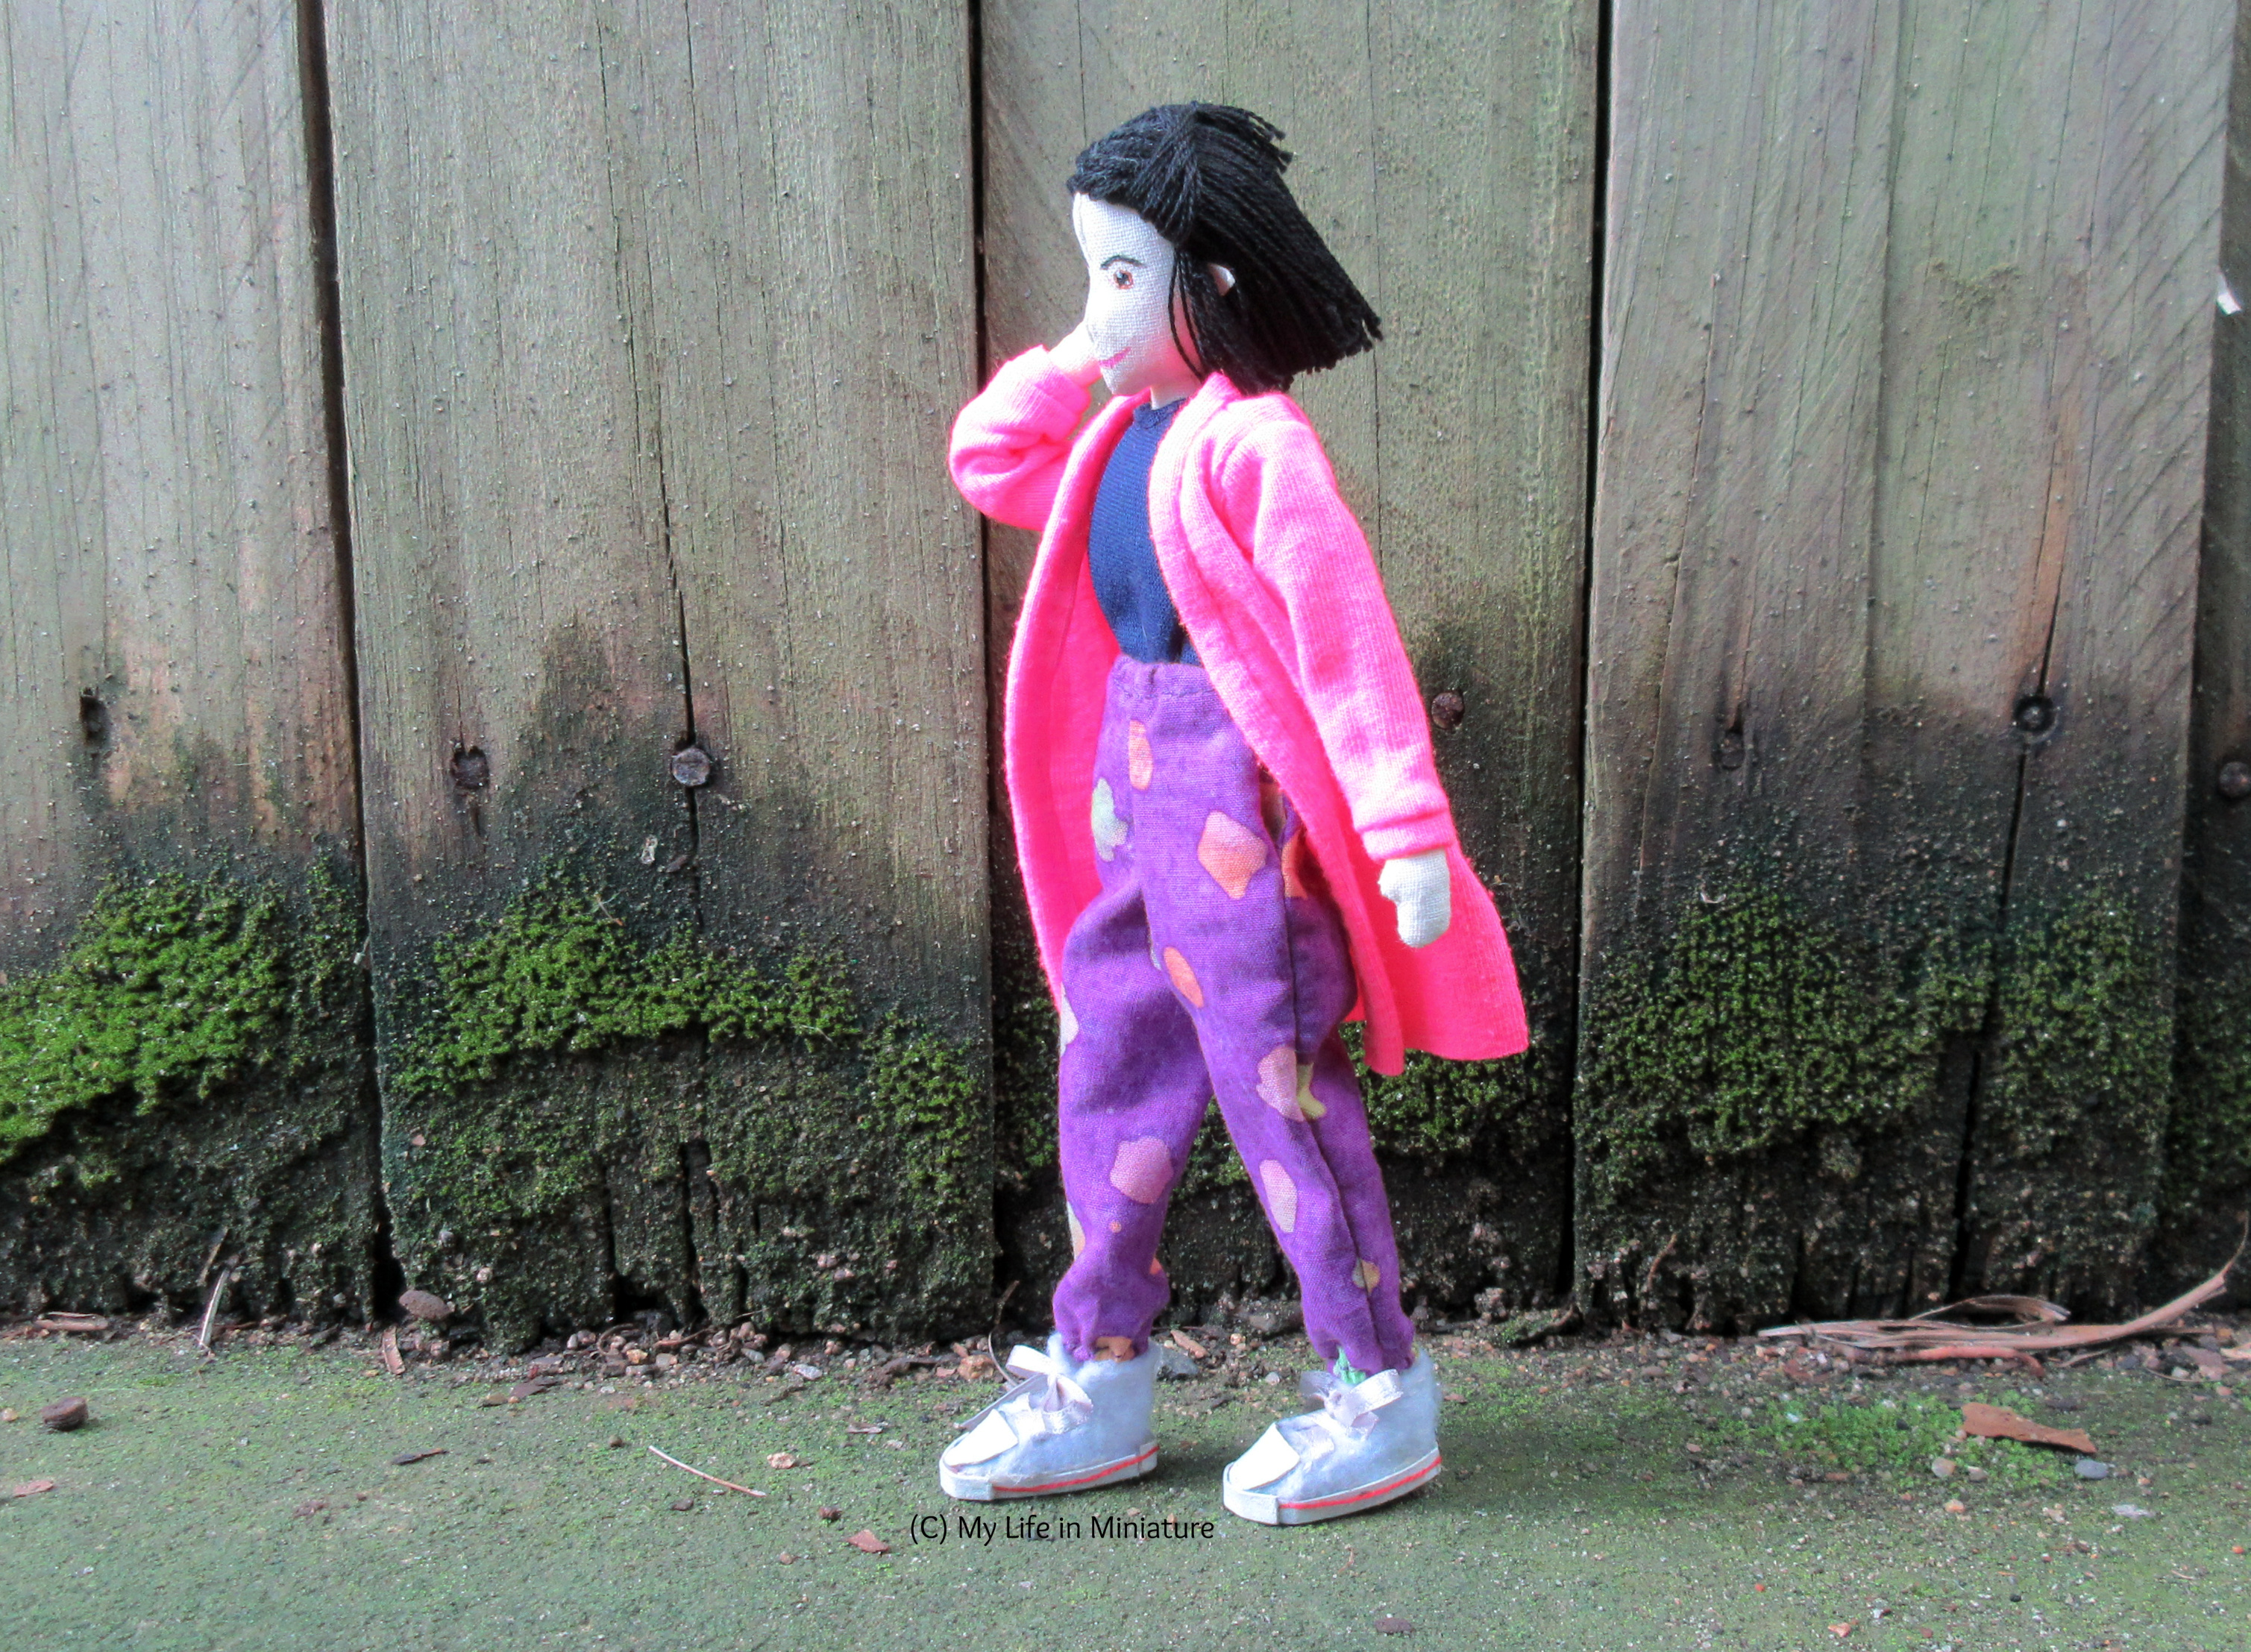 Tiffany walks left-to-right in front of a wood fence. She wears the neon pink cardigan with her loose purple pants and a navy top, ends flowing in the breeze. She tucks some loose hairs behind her ear.